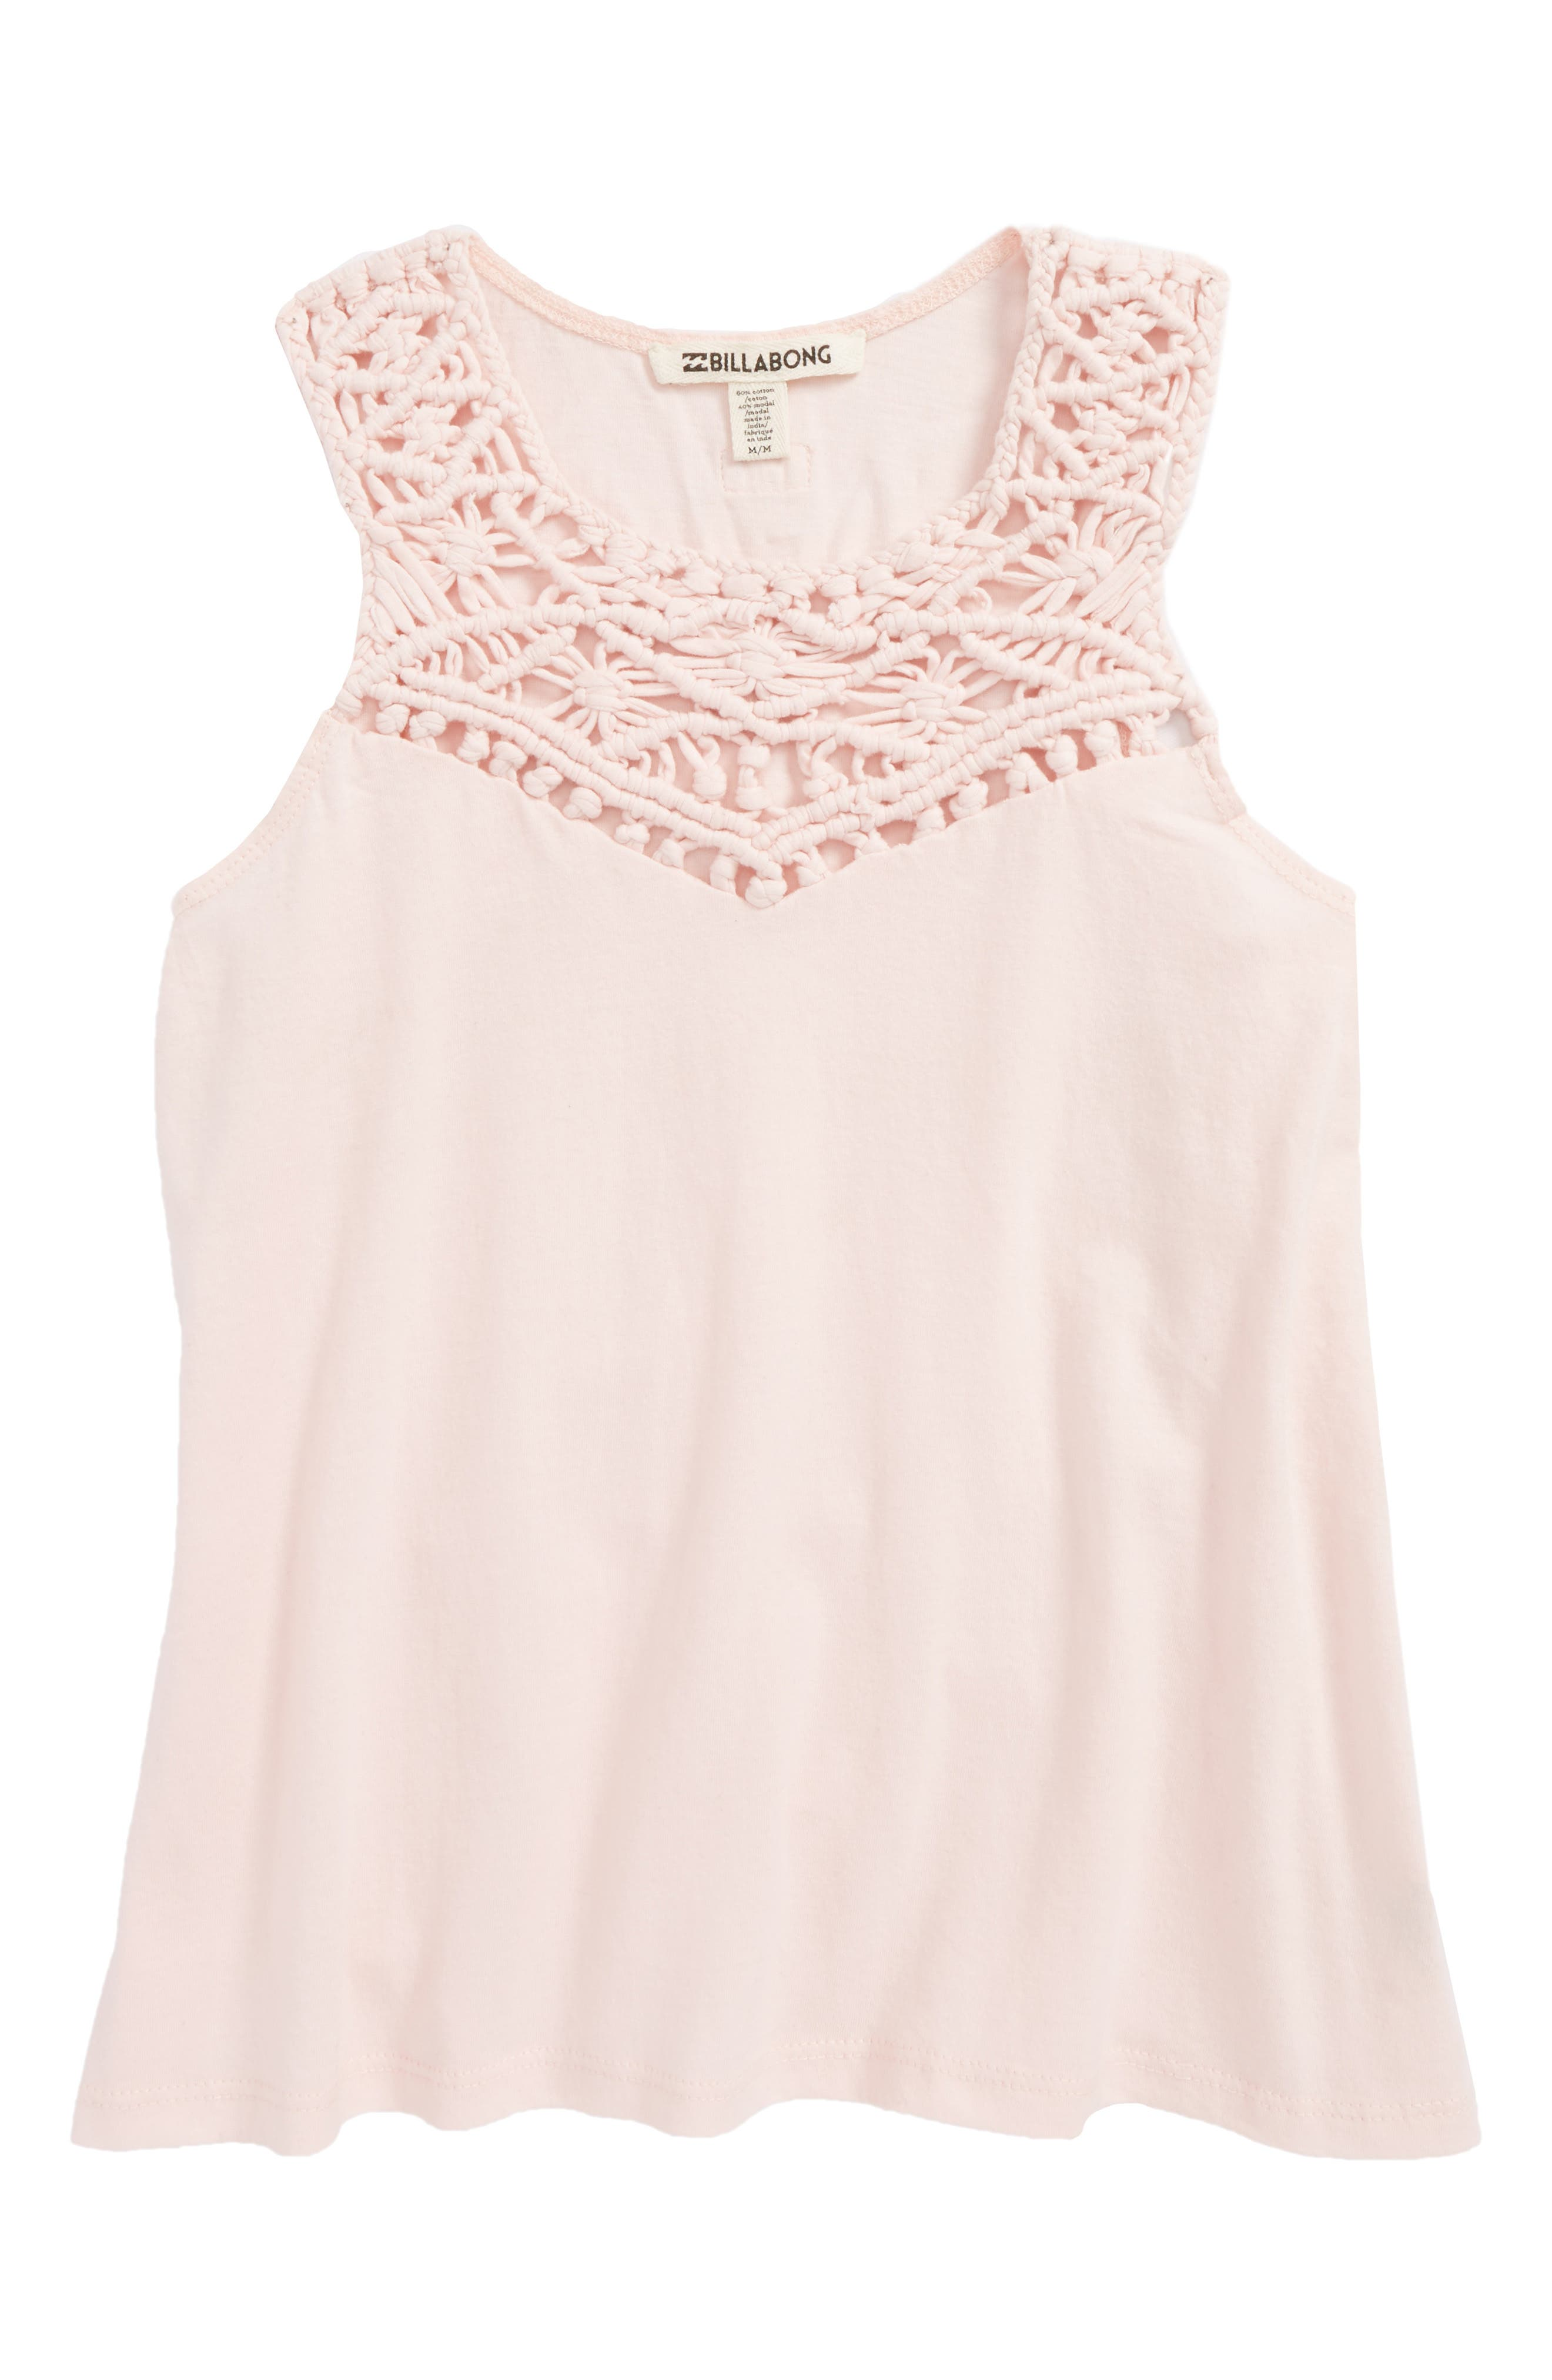 Second Look Tank,                         Main,                         color, Shell Pink